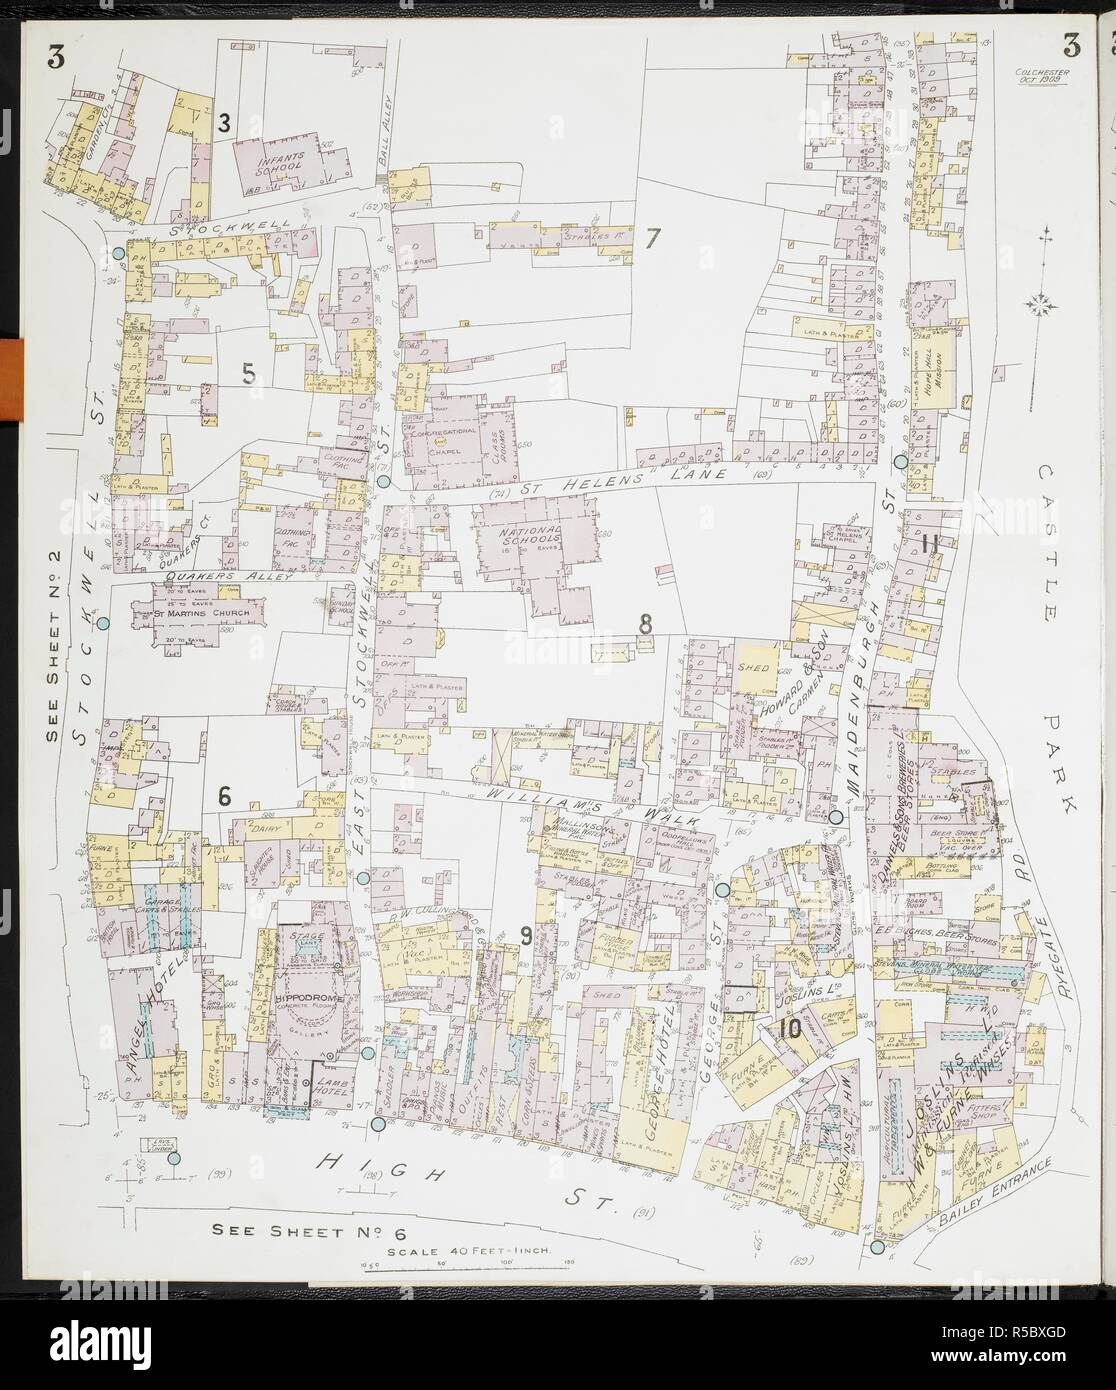 Map Of Colchester Essex Colchester Essex Fire Insurance Plans London Chas E Goad Limited 1909 63x54cm Scale 1 480 40ft 1 Inch Source Maps 149 B 29 2 Sheet 3 Stock Photo Alamy